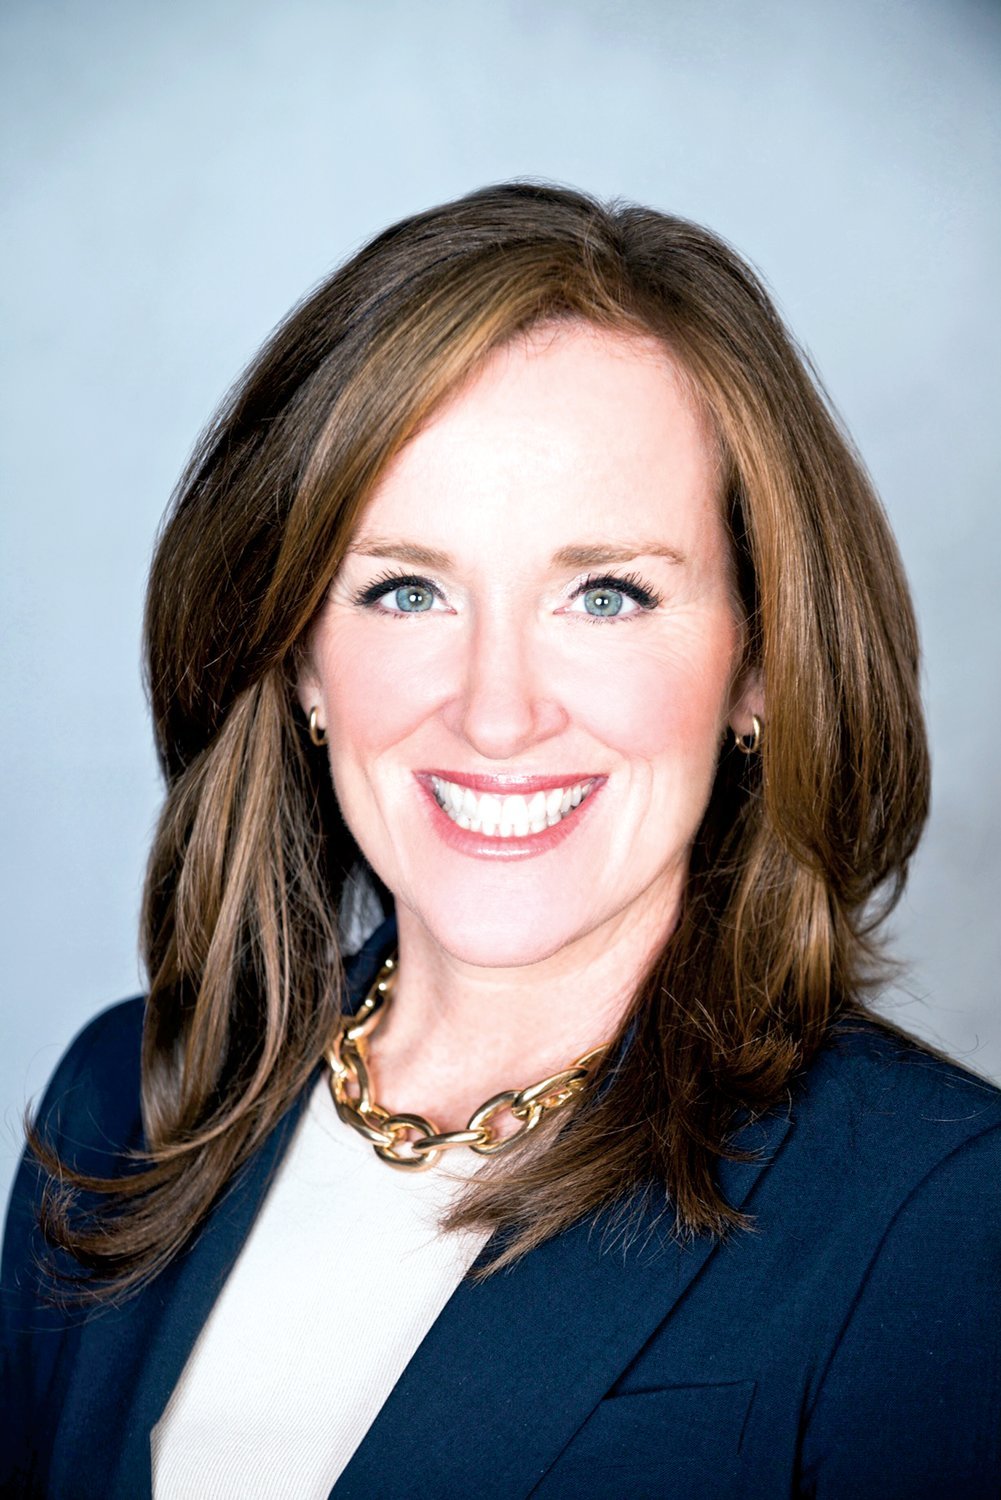 U.S. Rep. Kathleen Rice